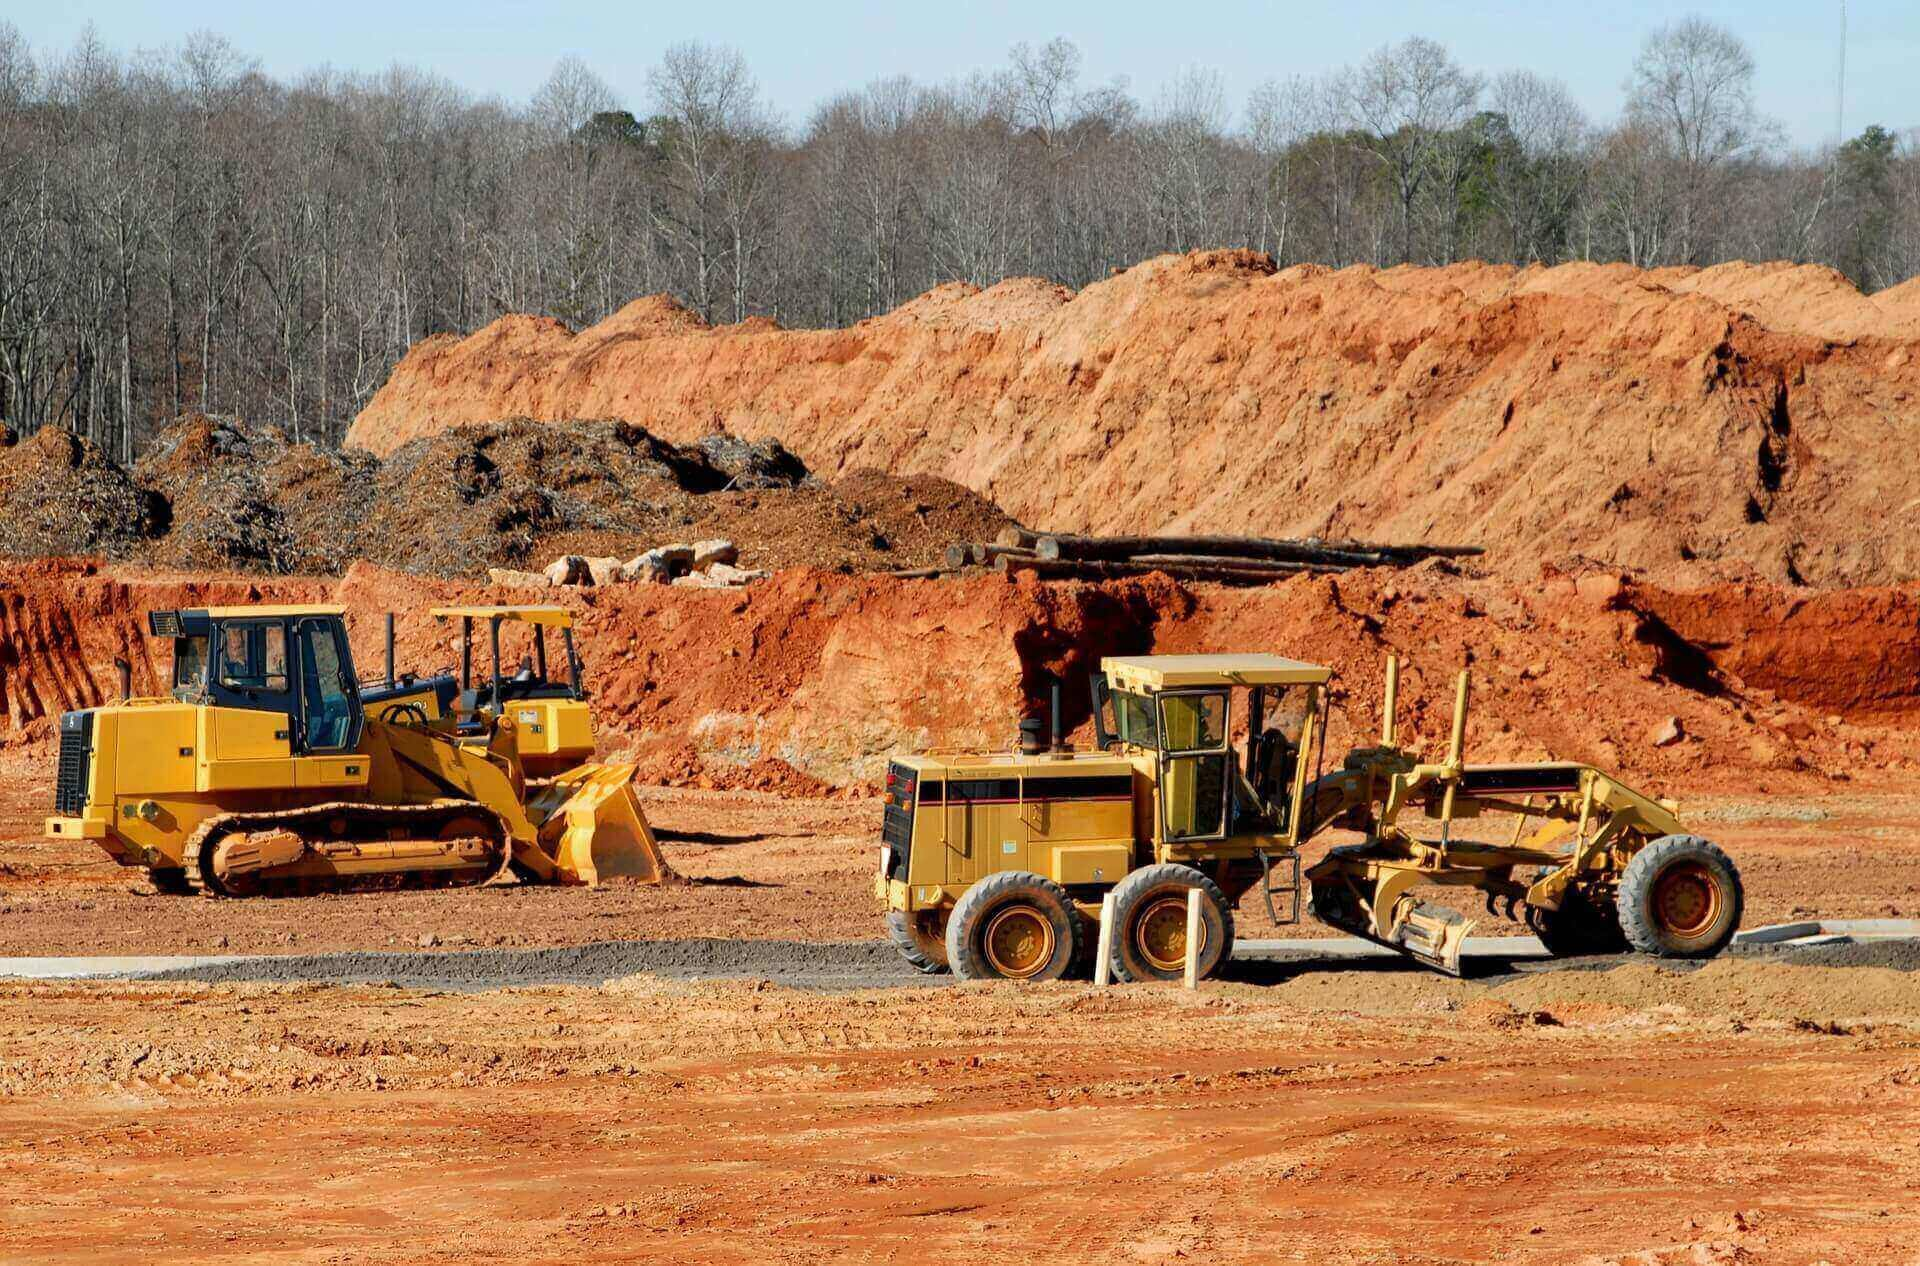 Construction site with dirt movers